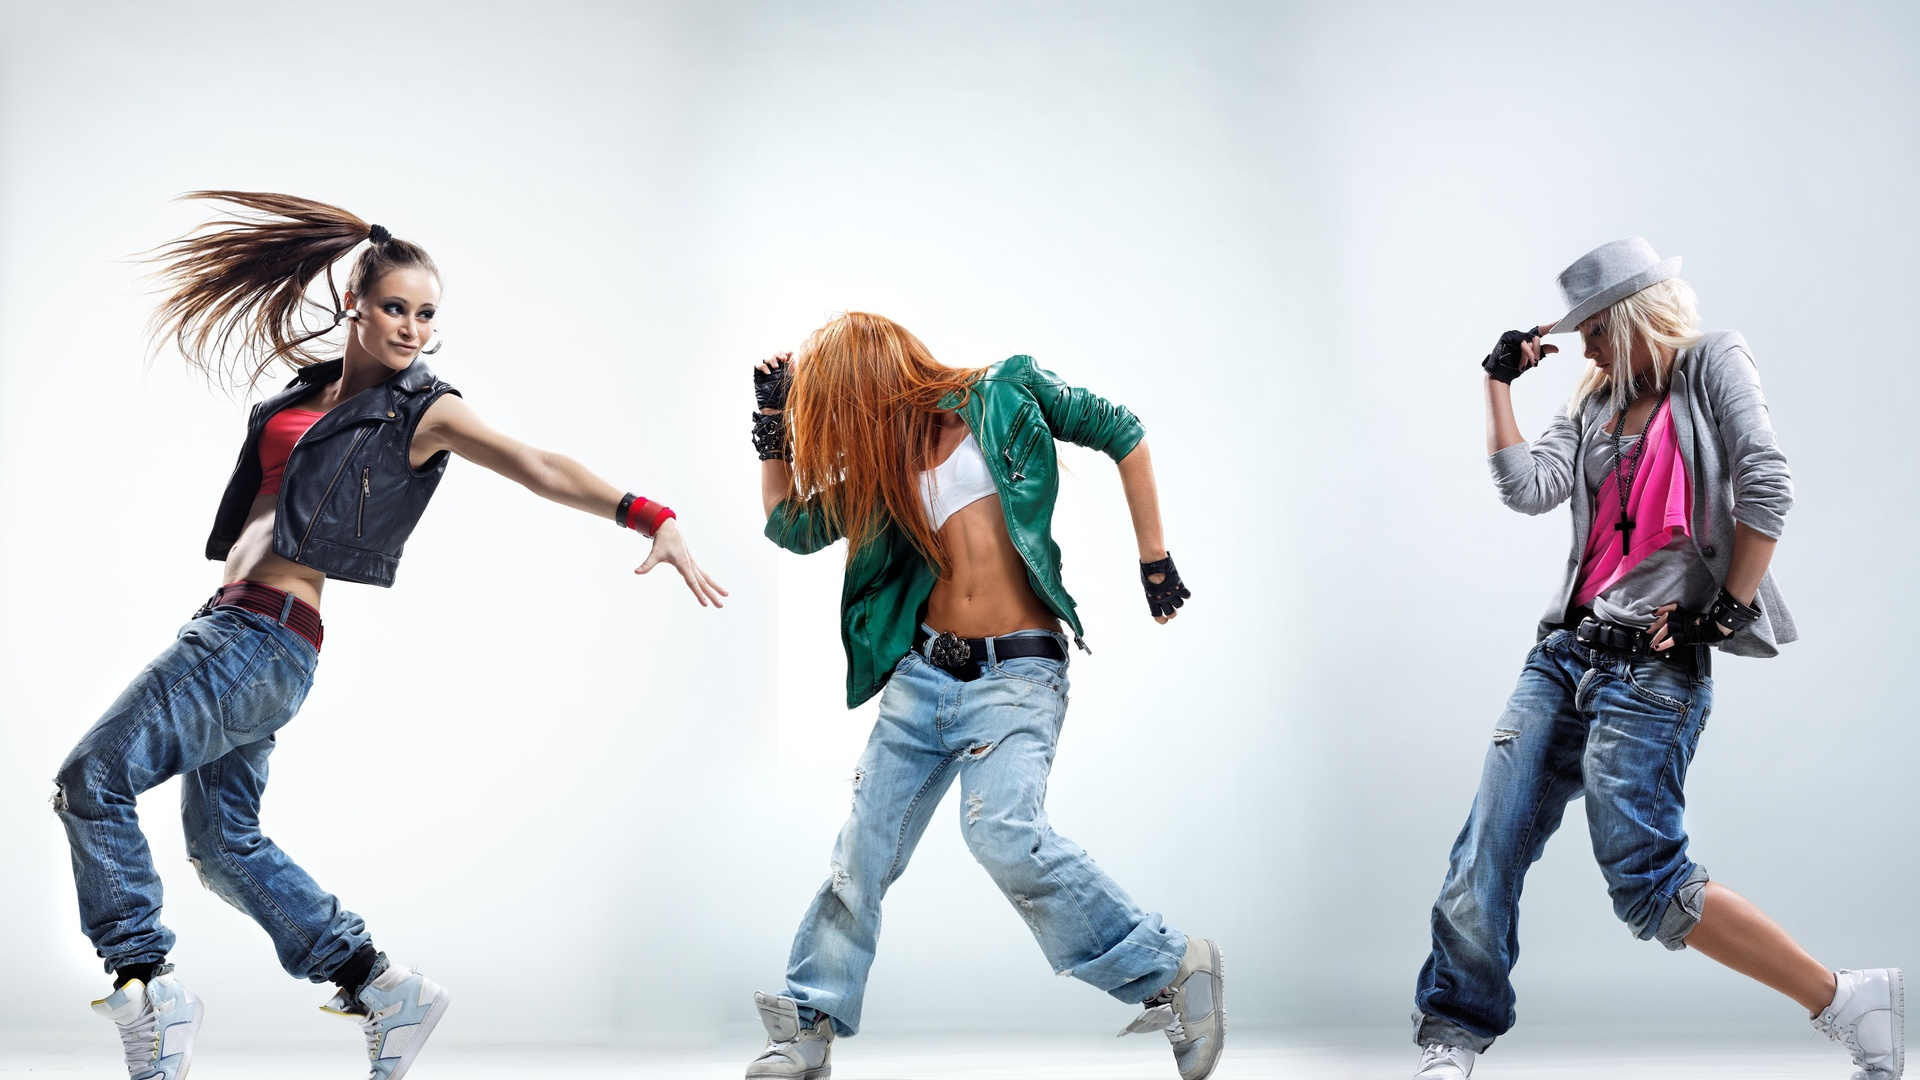 Hip Hop Girl Dance Images amp Pictures   Becuo 1920x1080